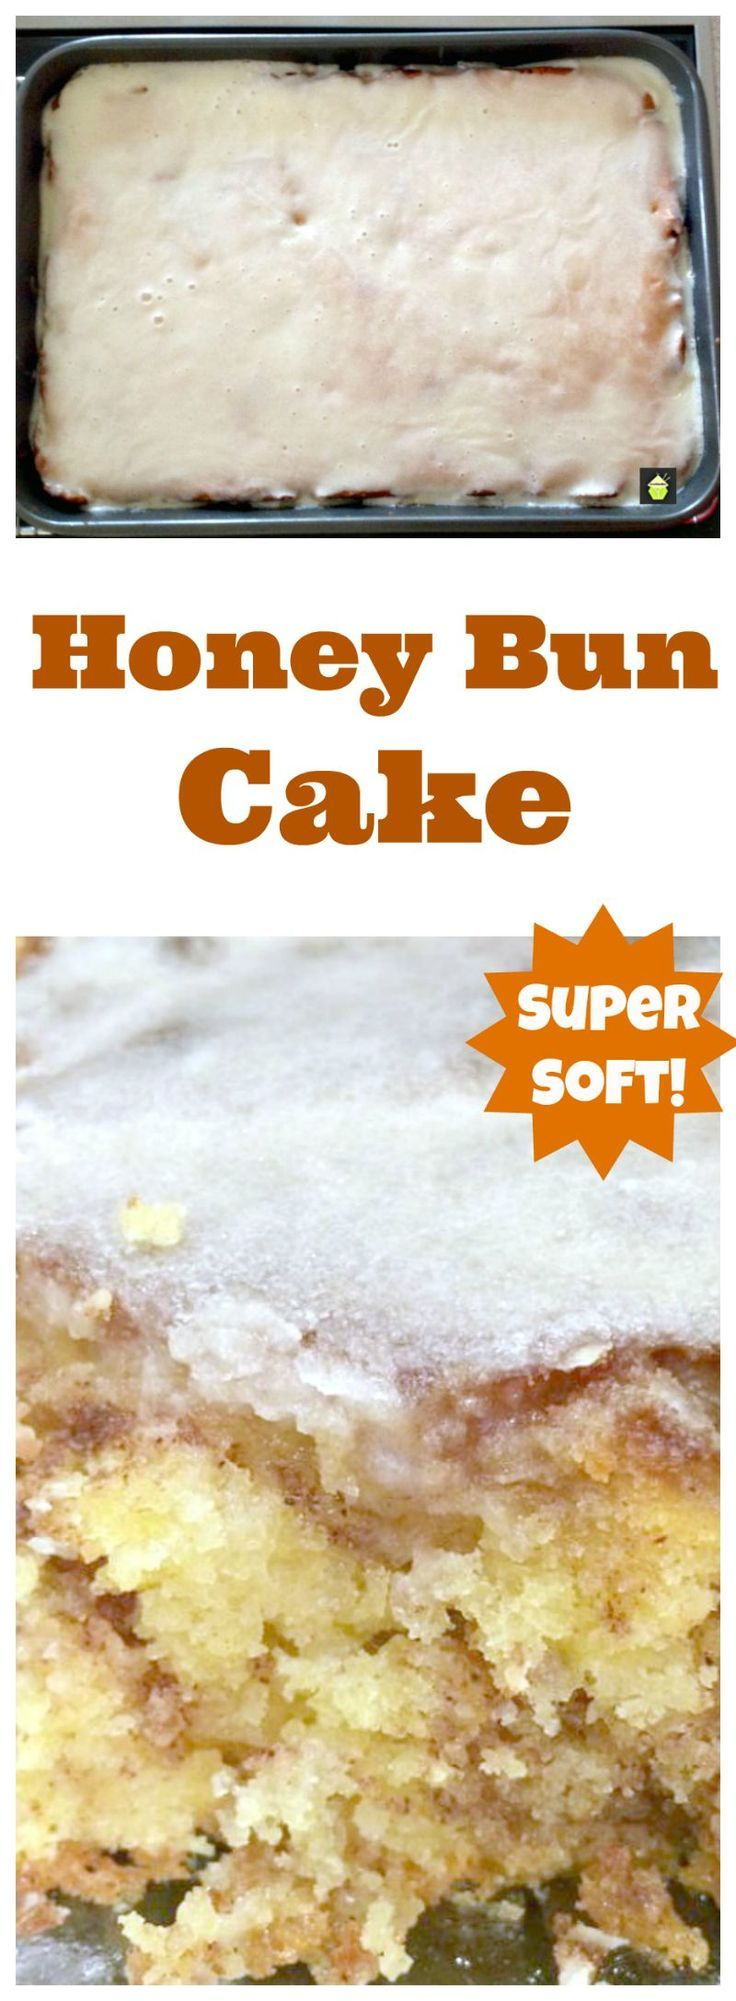 Honey Bun Cake! This is a delicious, moist cinnamon and brown sugar cake, and always popular with the family! | Lovefoodies.com